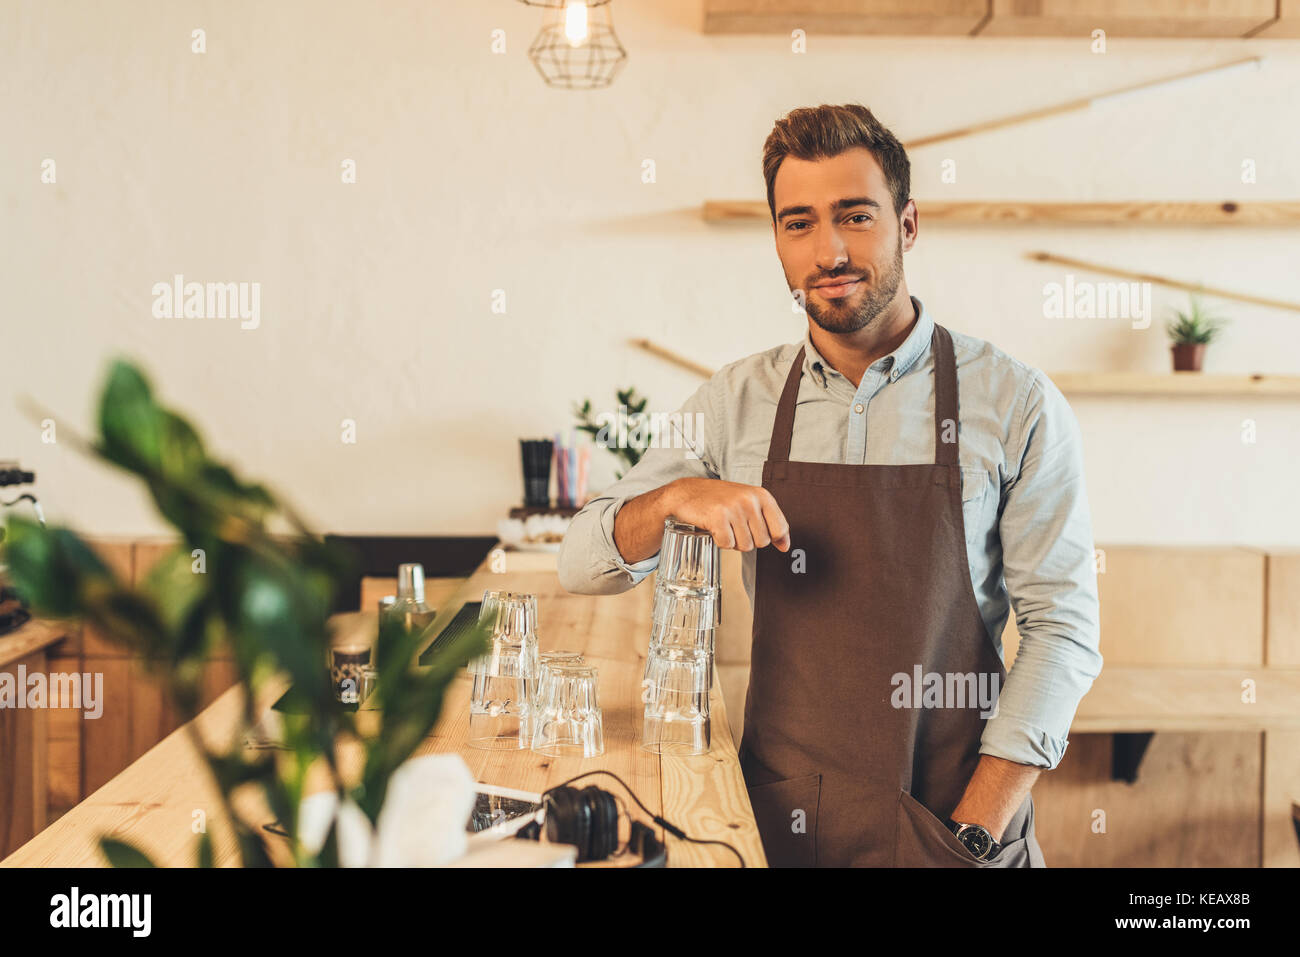 barista standing at counter - Stock Image